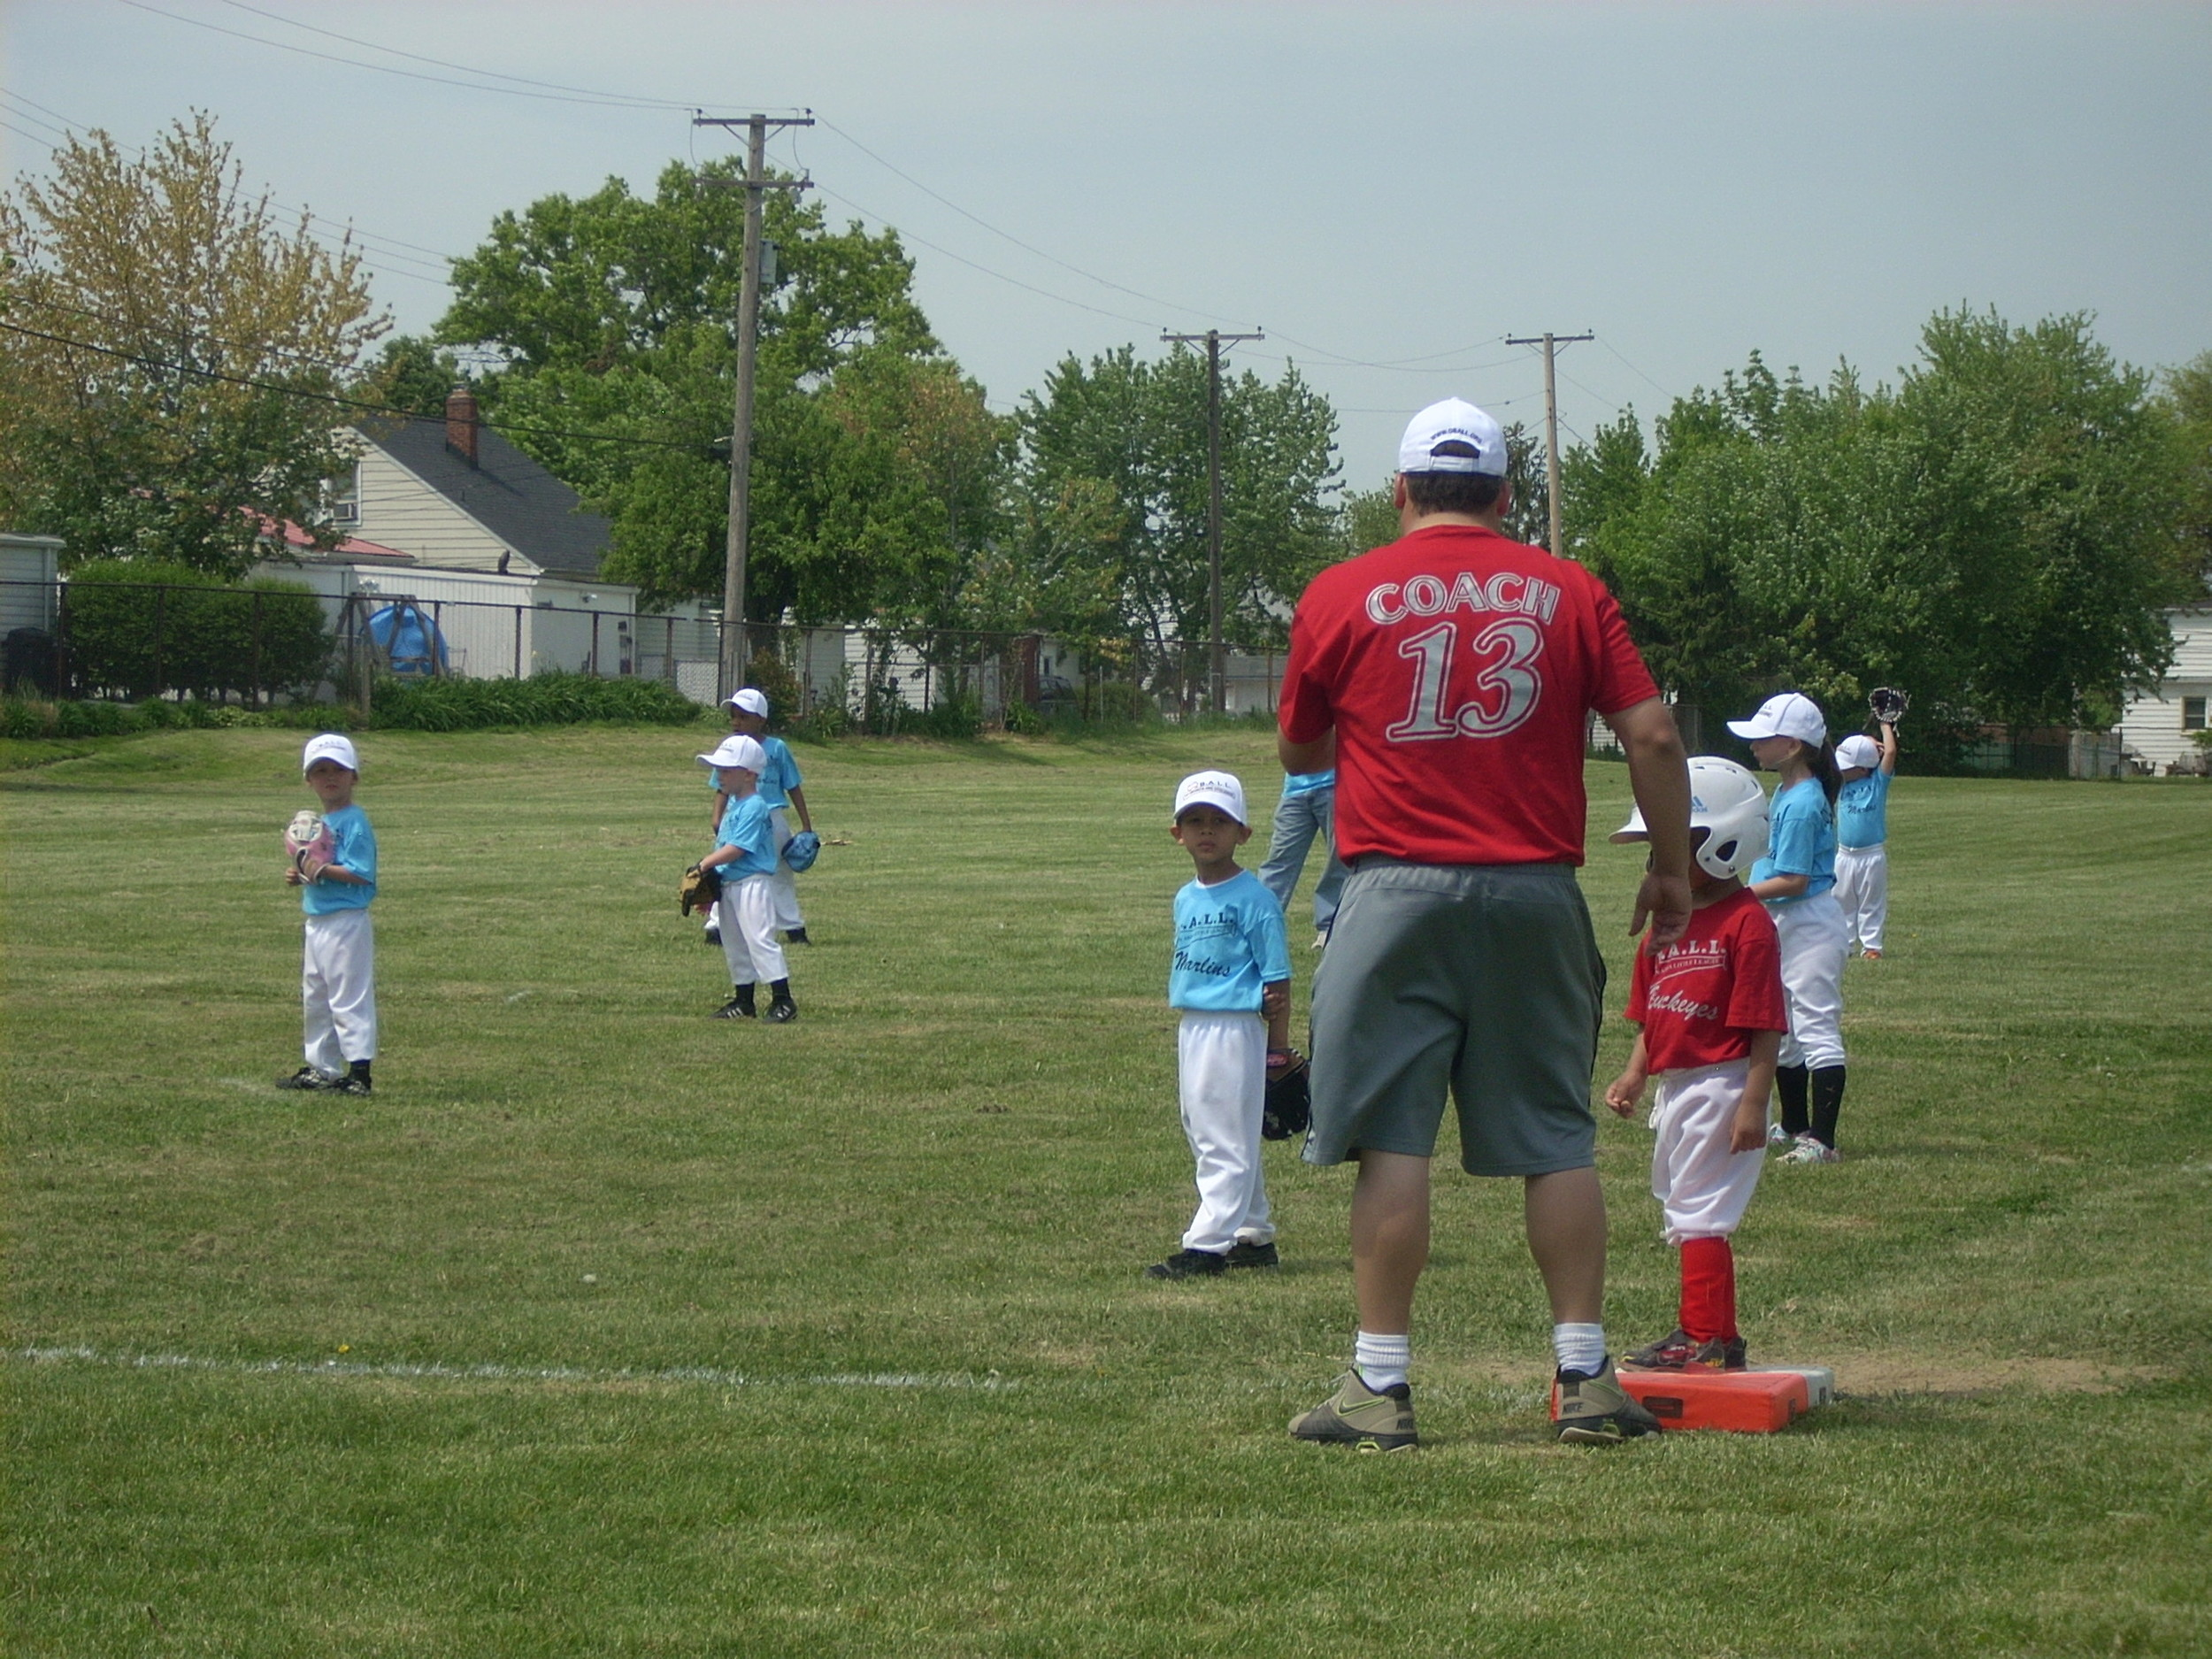 2013-OBALL-pictures-012.jpg